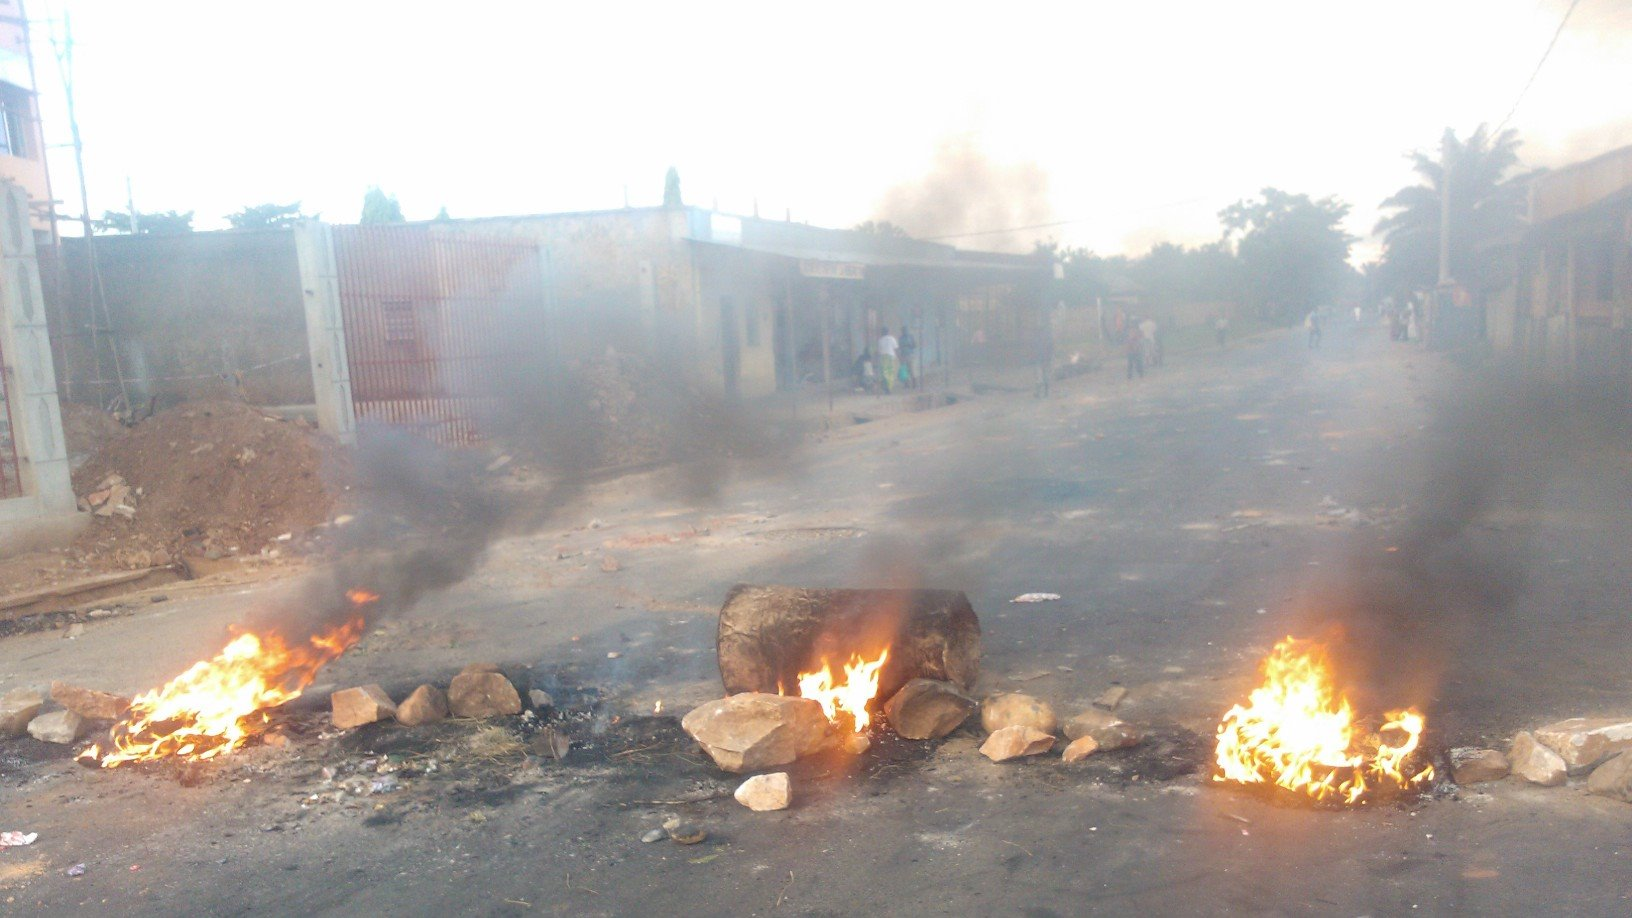 Burning barricades in Bujumbura